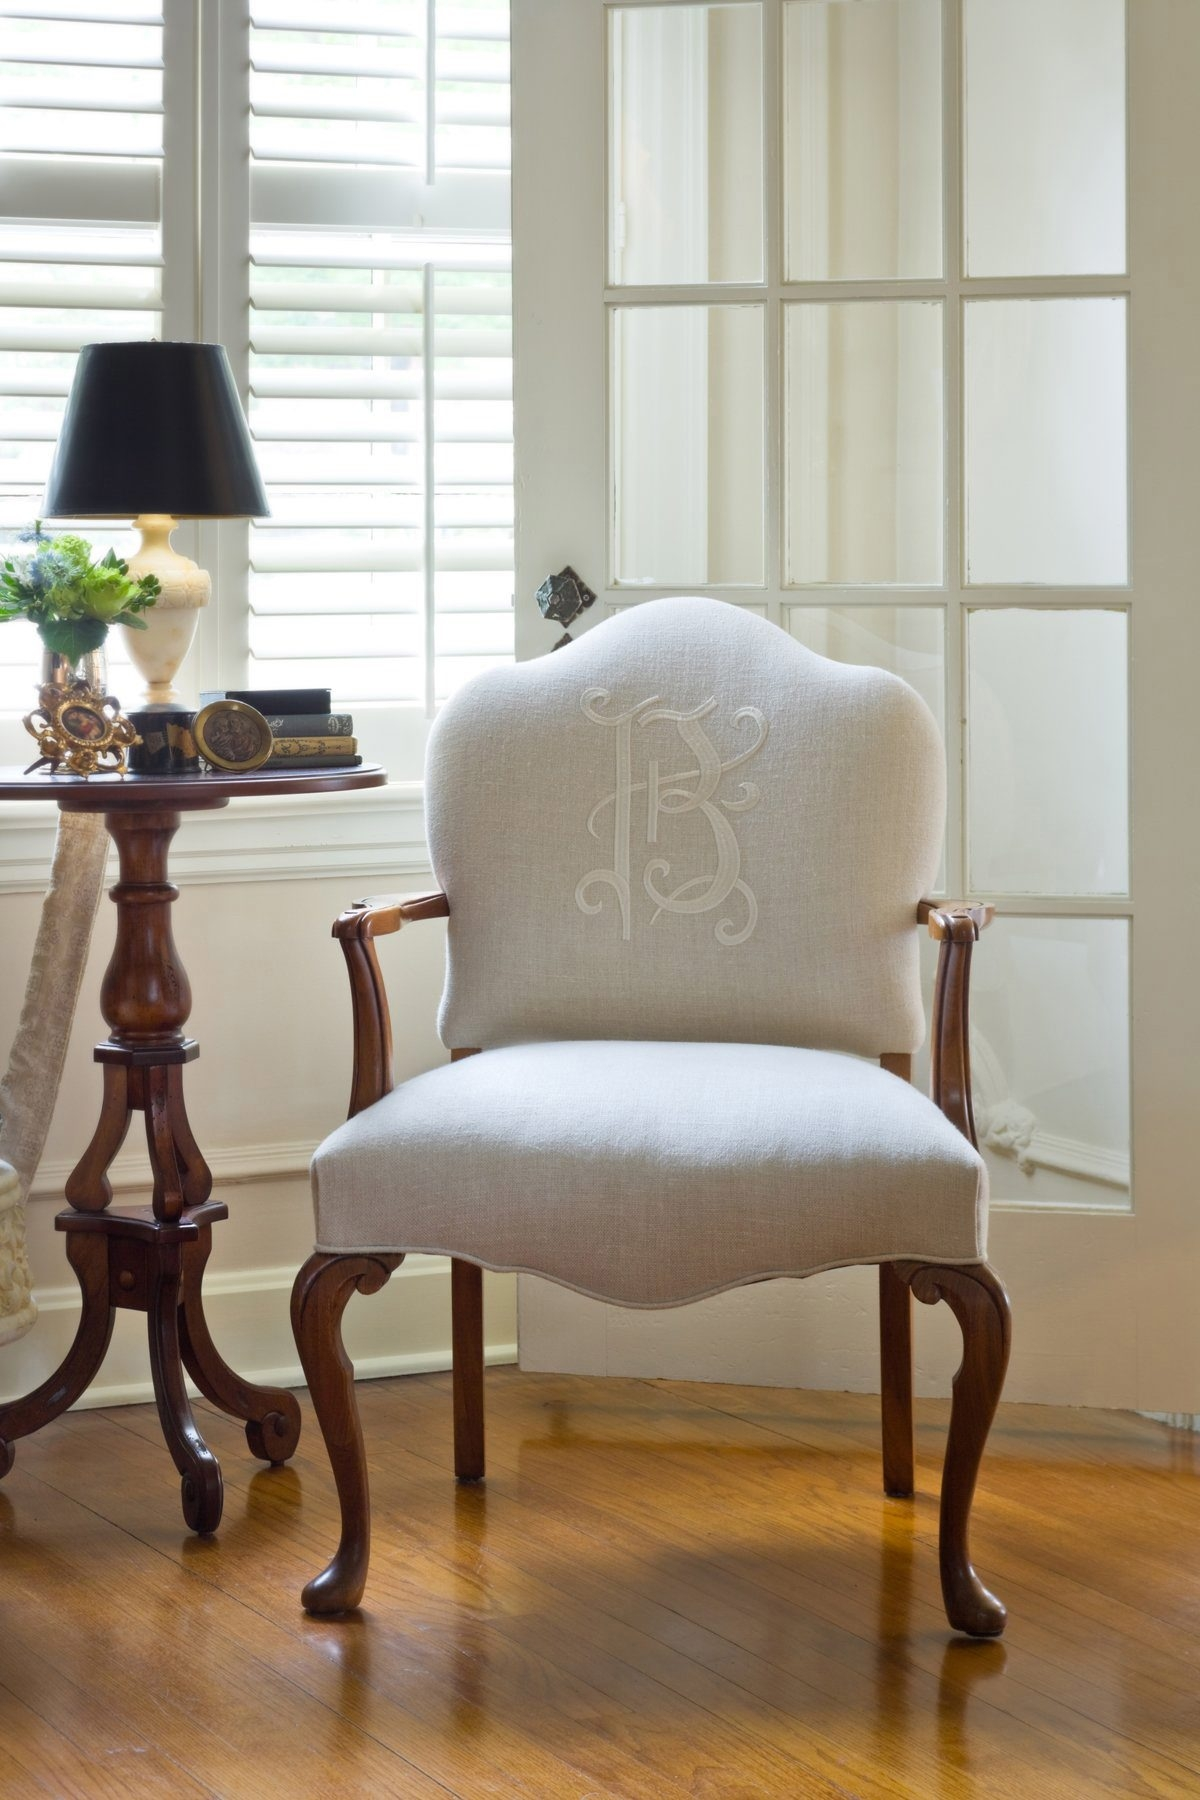 If you want to add a little something extra – a small detail that makes your rooms so personal and unique – add some monograms.